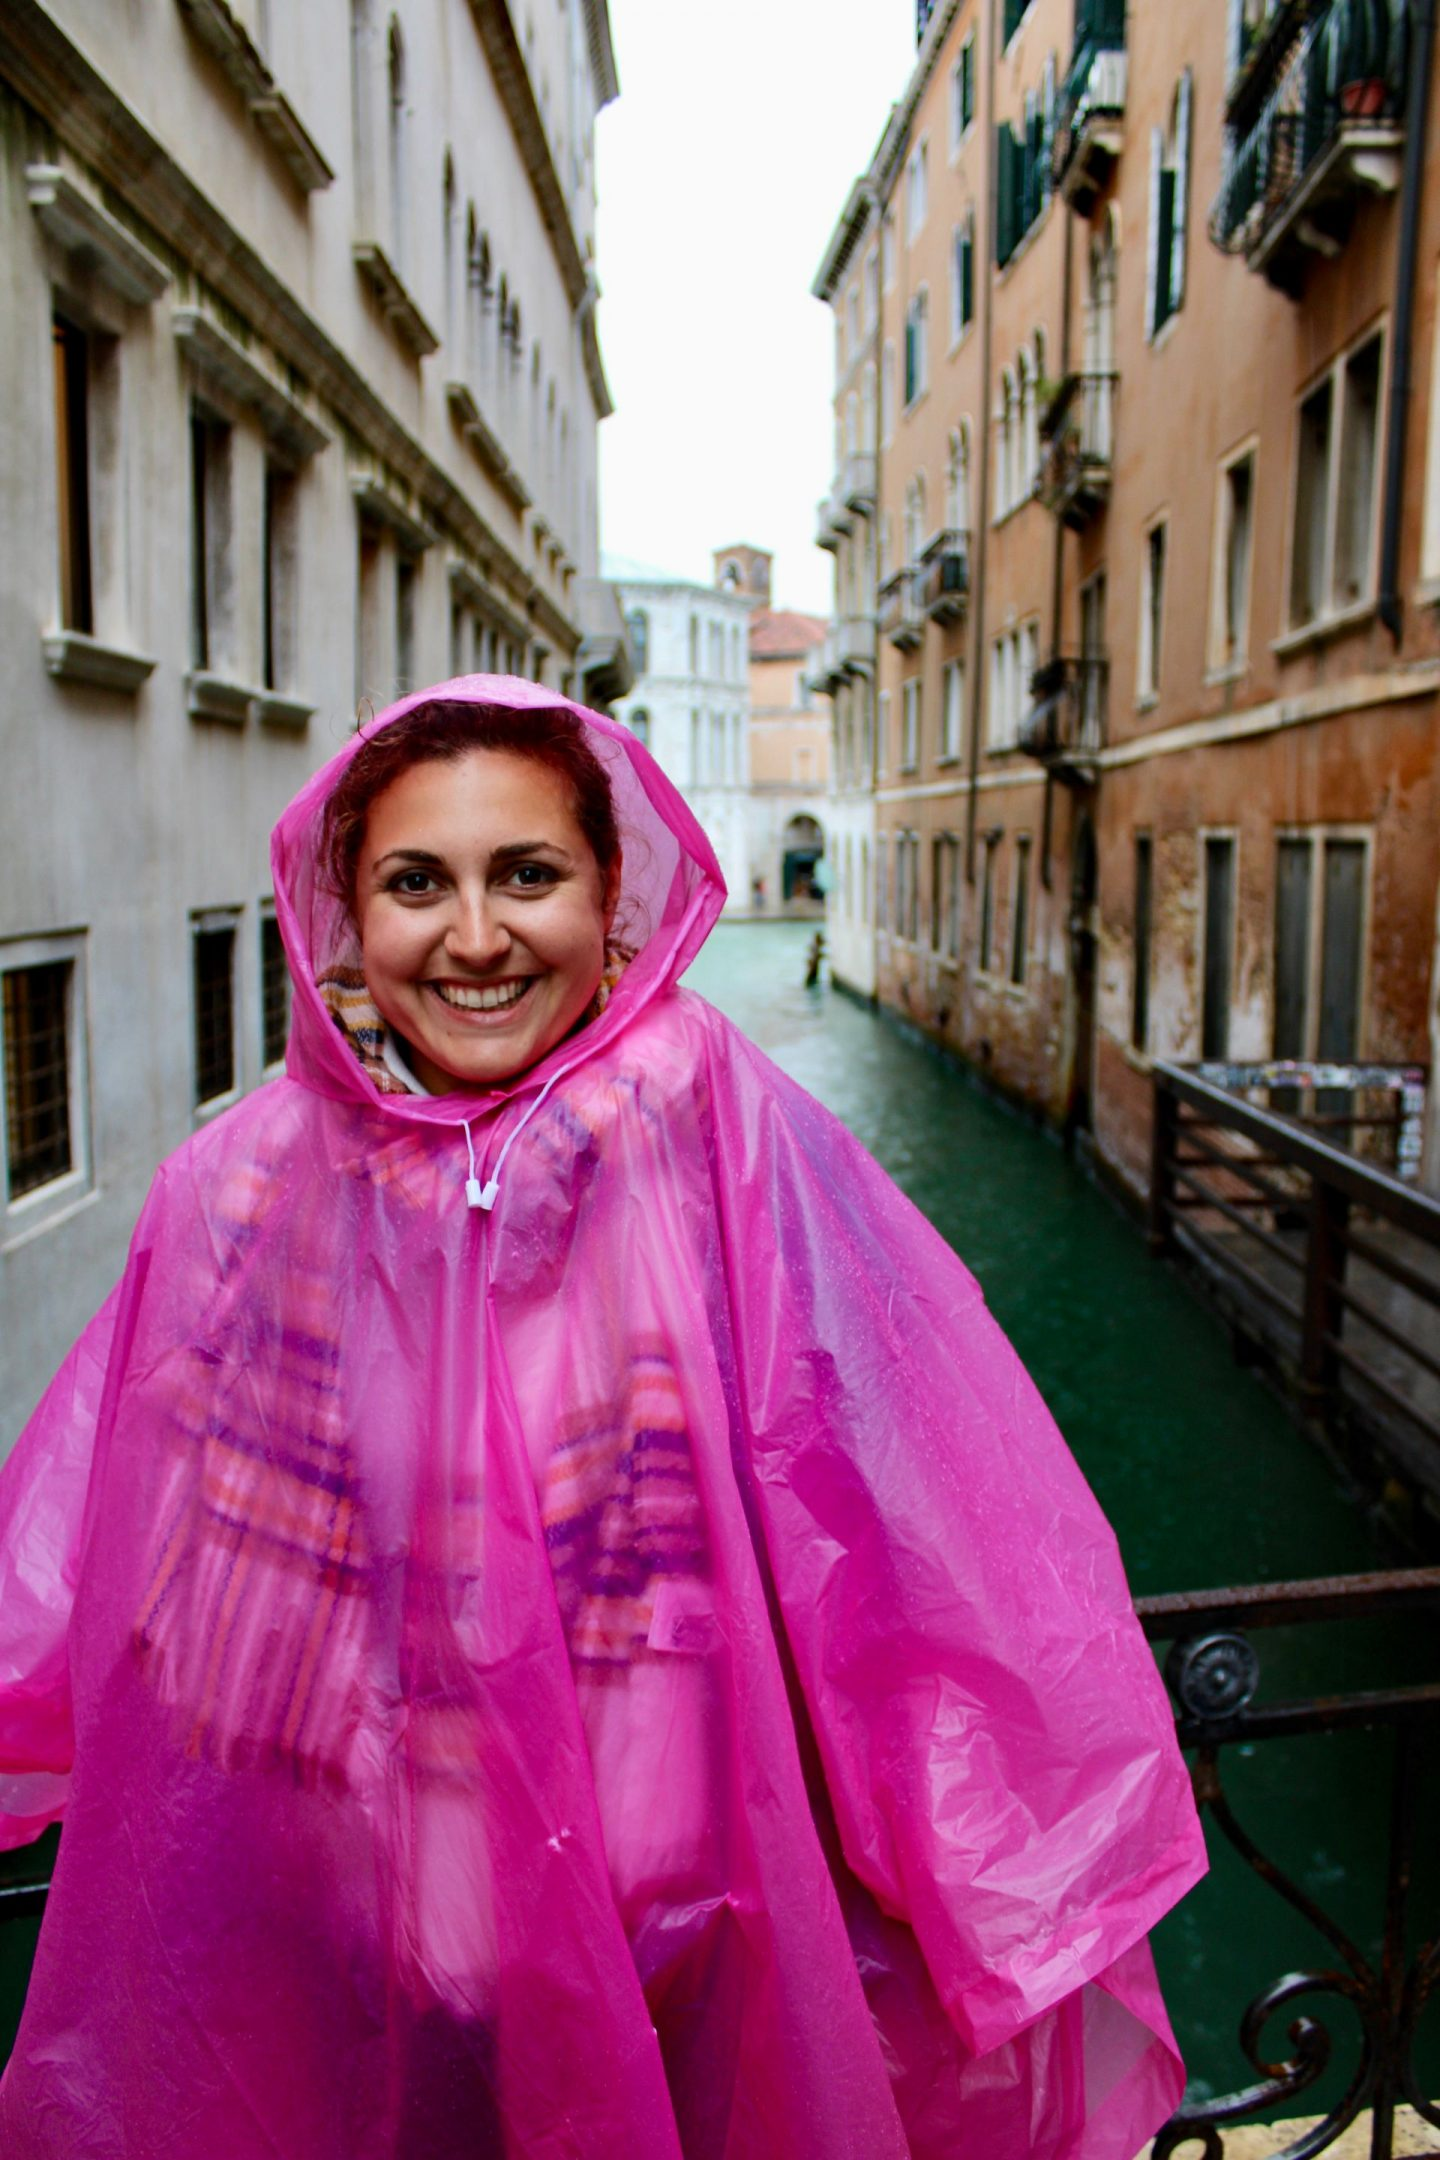 best cicchetti in Venice: Nell wearing a bright pink rain poncho and smiling at the camera with a canal behind her